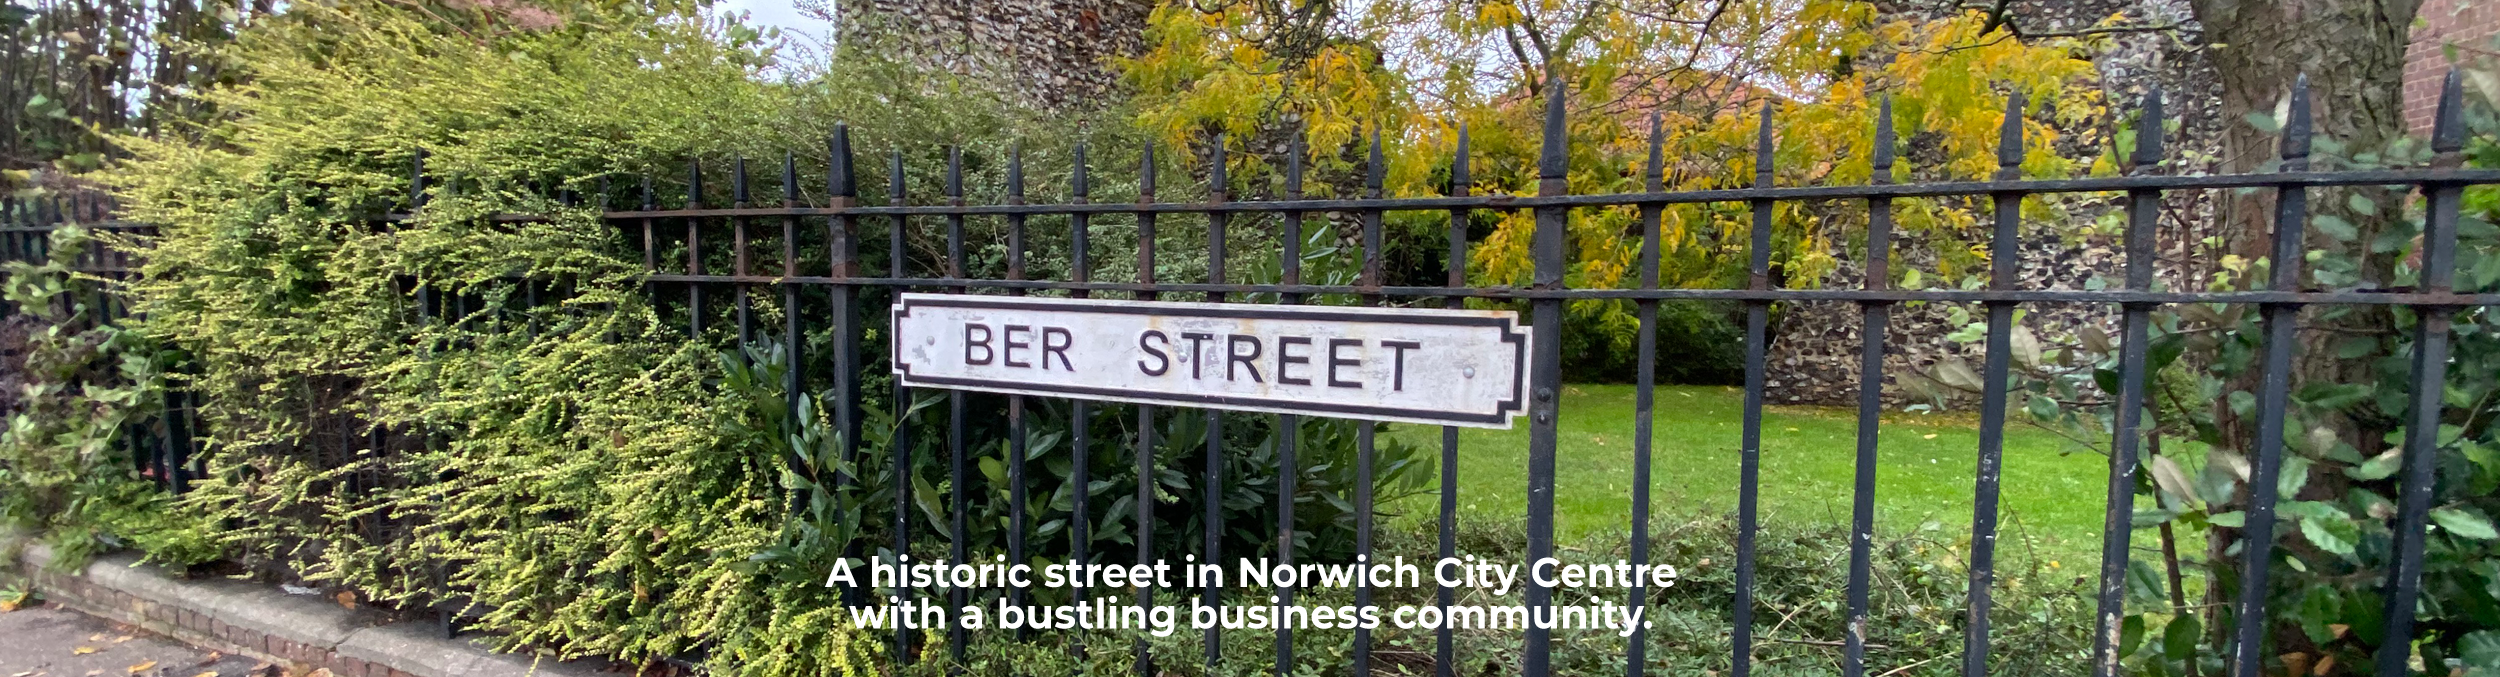 Ber Street is a historic street in Norwich City with many local businesses